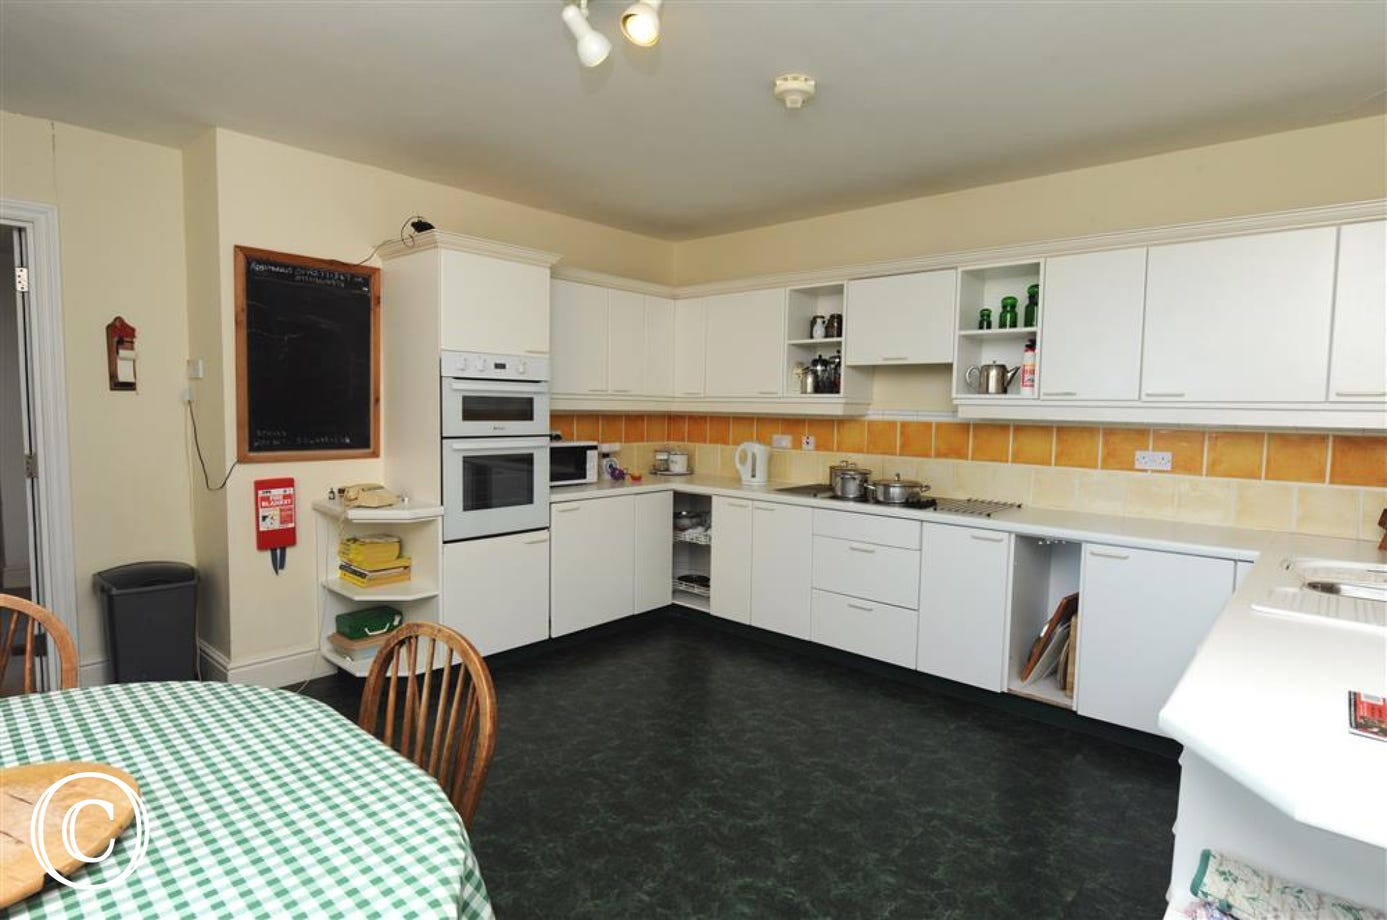 Modern Kitchen with microwave, fan oven, hob, dishwasher, fridge & fully fitted units.